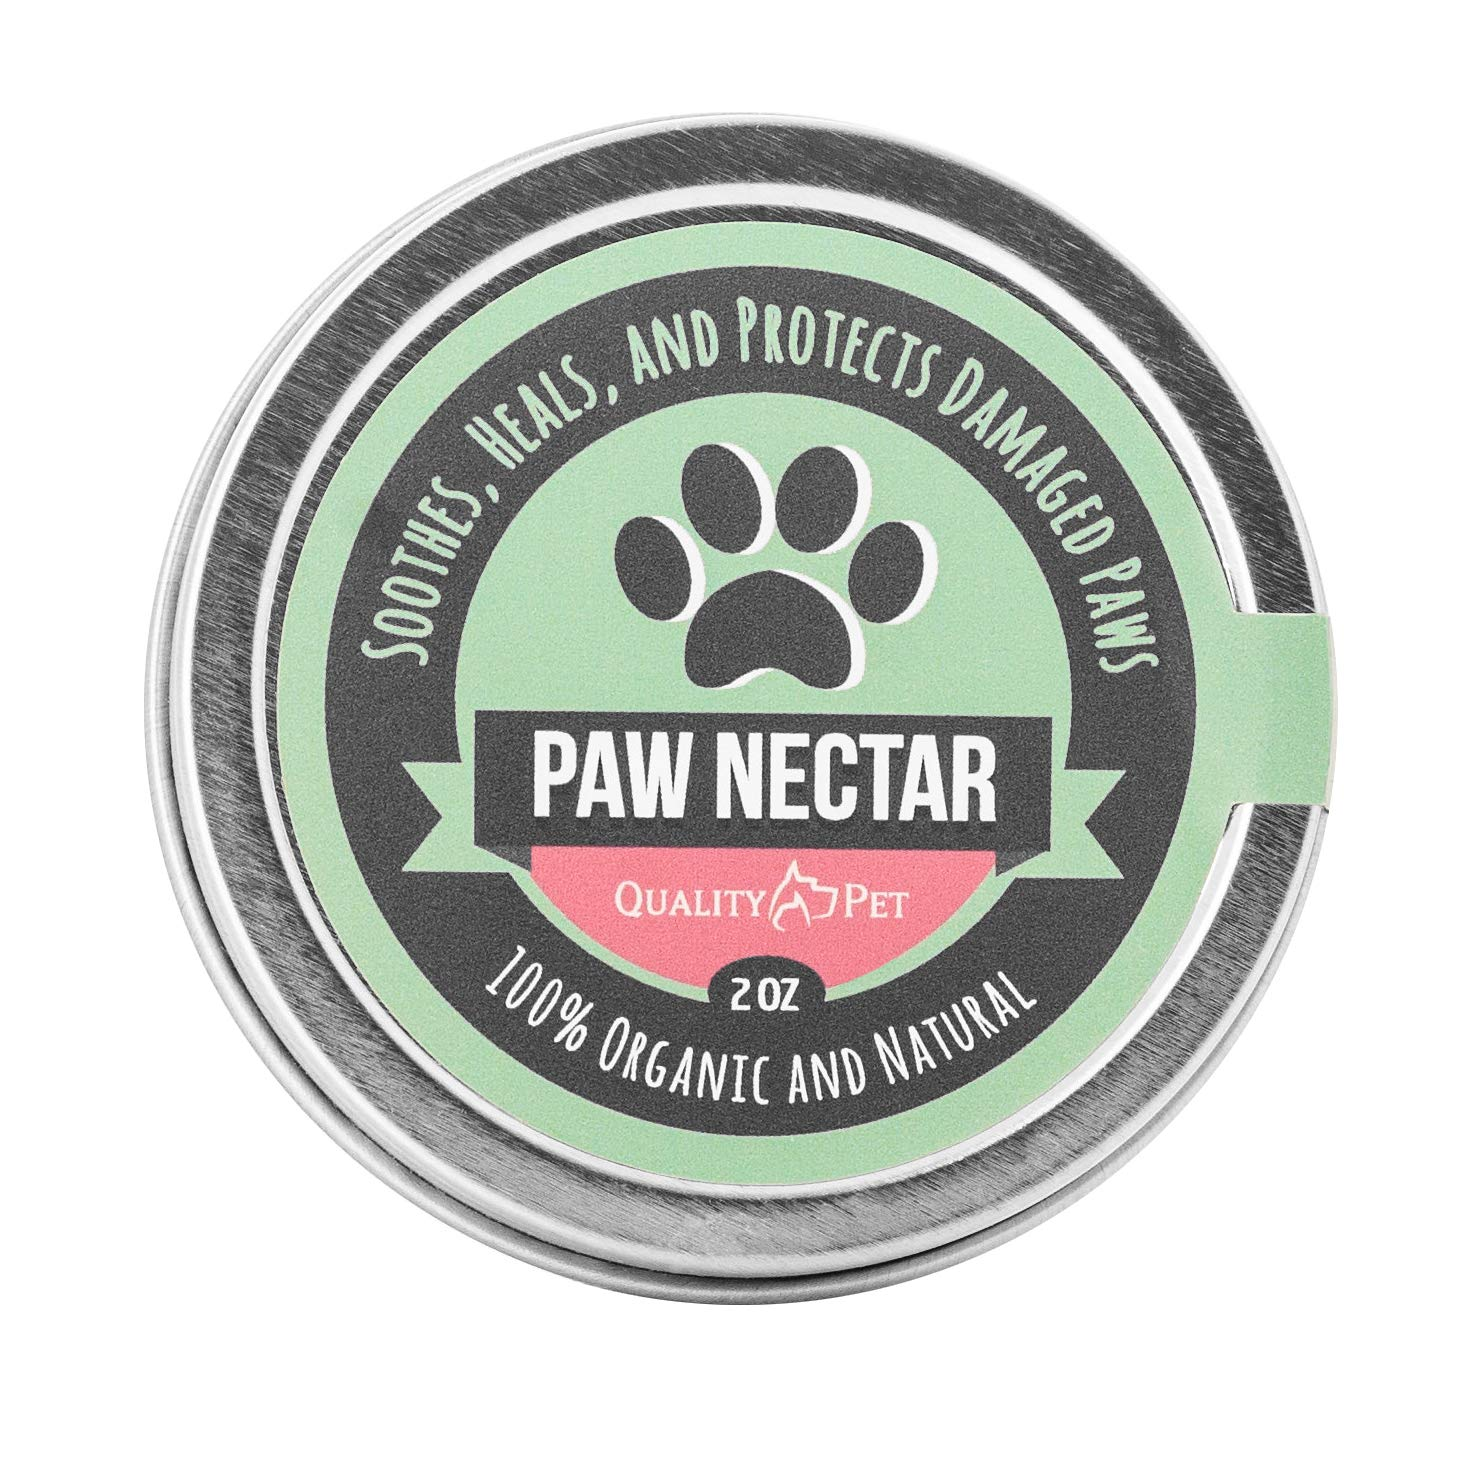 100% Organic and Natural Paw Wax Heals and Repairs Damaged Dog Paws by Paw Nectar